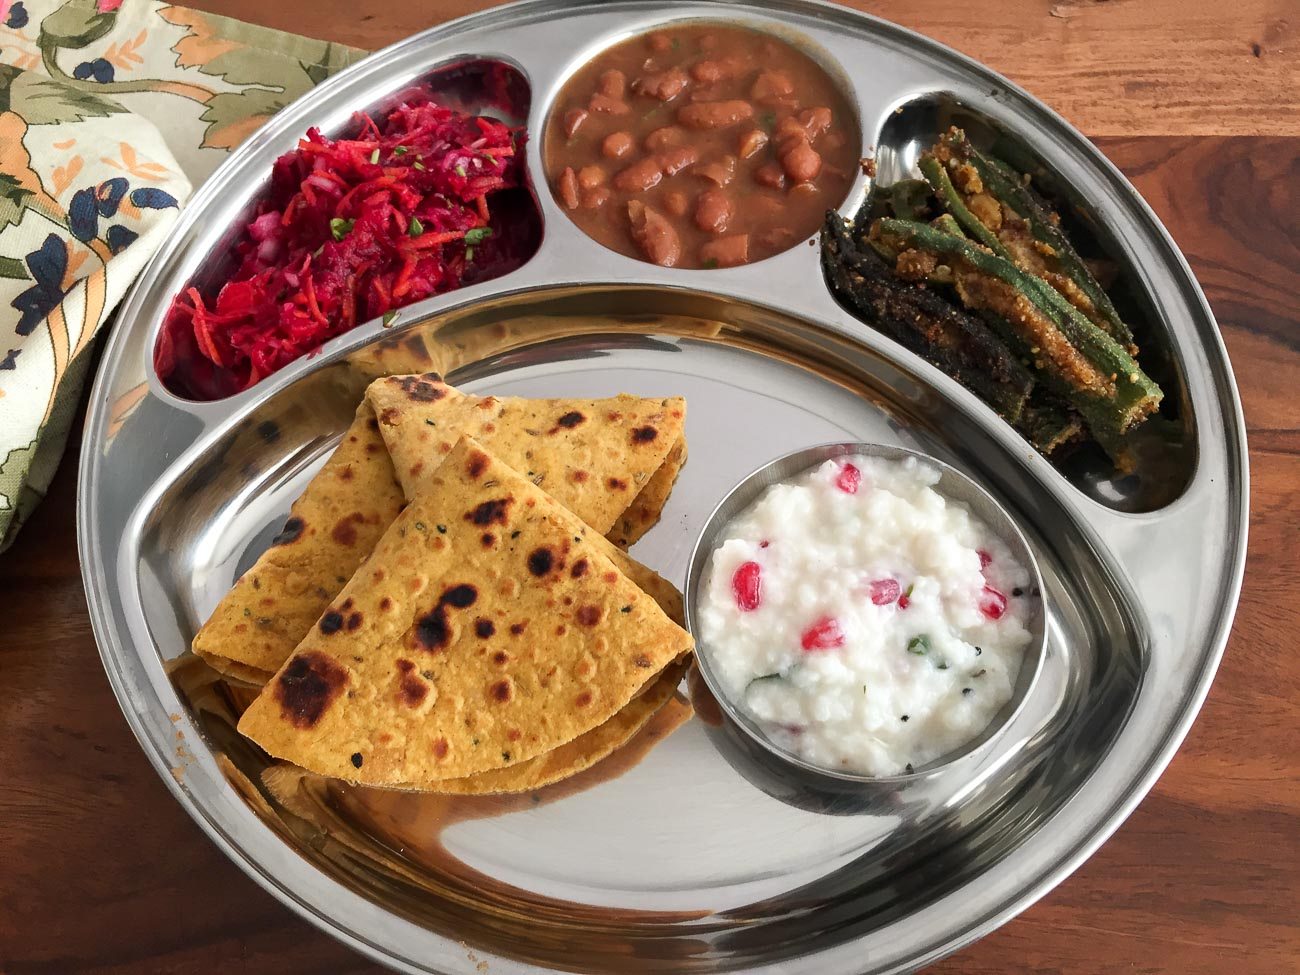 Portion Control Meal Plate - Rajma Masala Bharwa Bhindi Thepla And More & Portion Control Meal Plate - Rajma Masala Bharwa Bhindi Thepla And ...